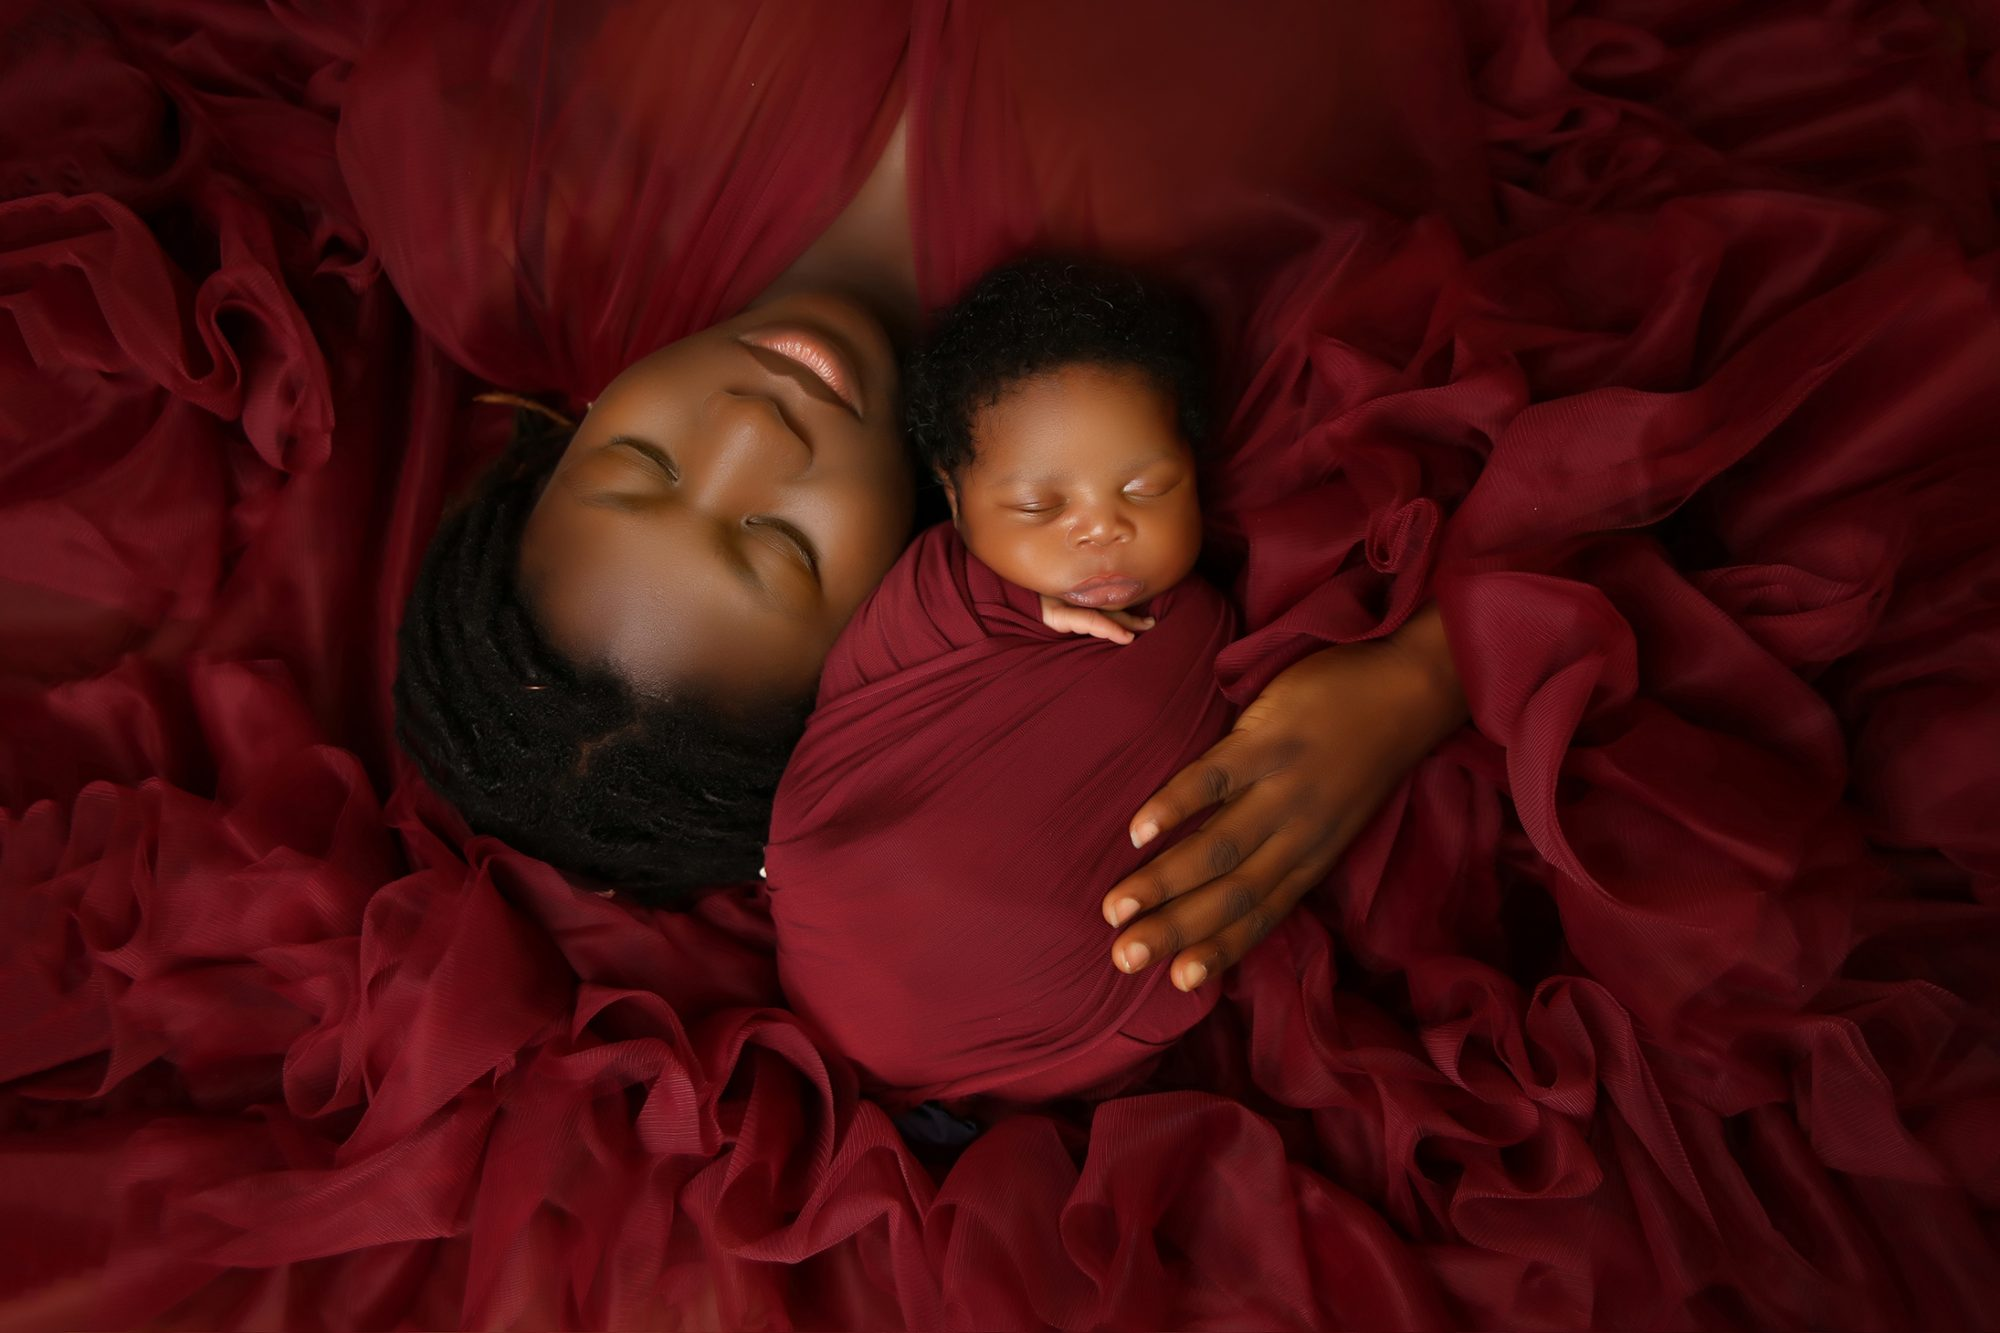 a nigerian mother upside down with eyes closed with hand on newborn baby boy in burgundy red chiffon